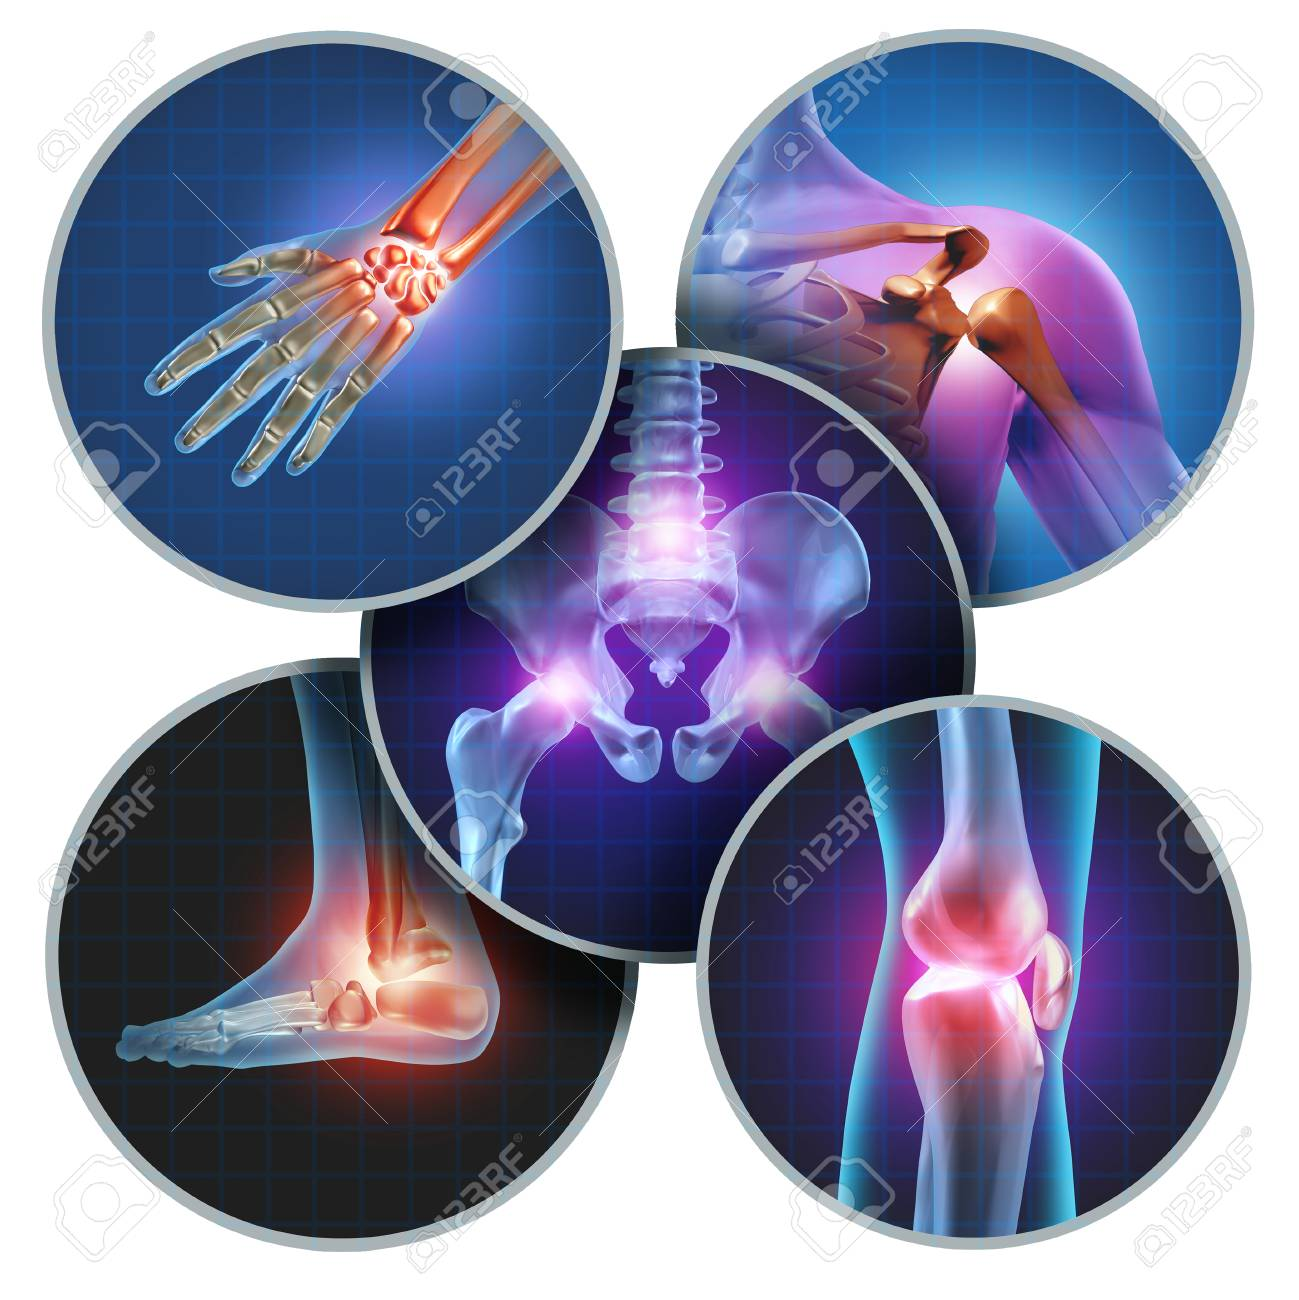 Human painful joints concept with the skeleton anatomy of the body with a group of sores with glowing joint pain and injury or arthritis illness symbol for health care and medical symptoms. - 94420754